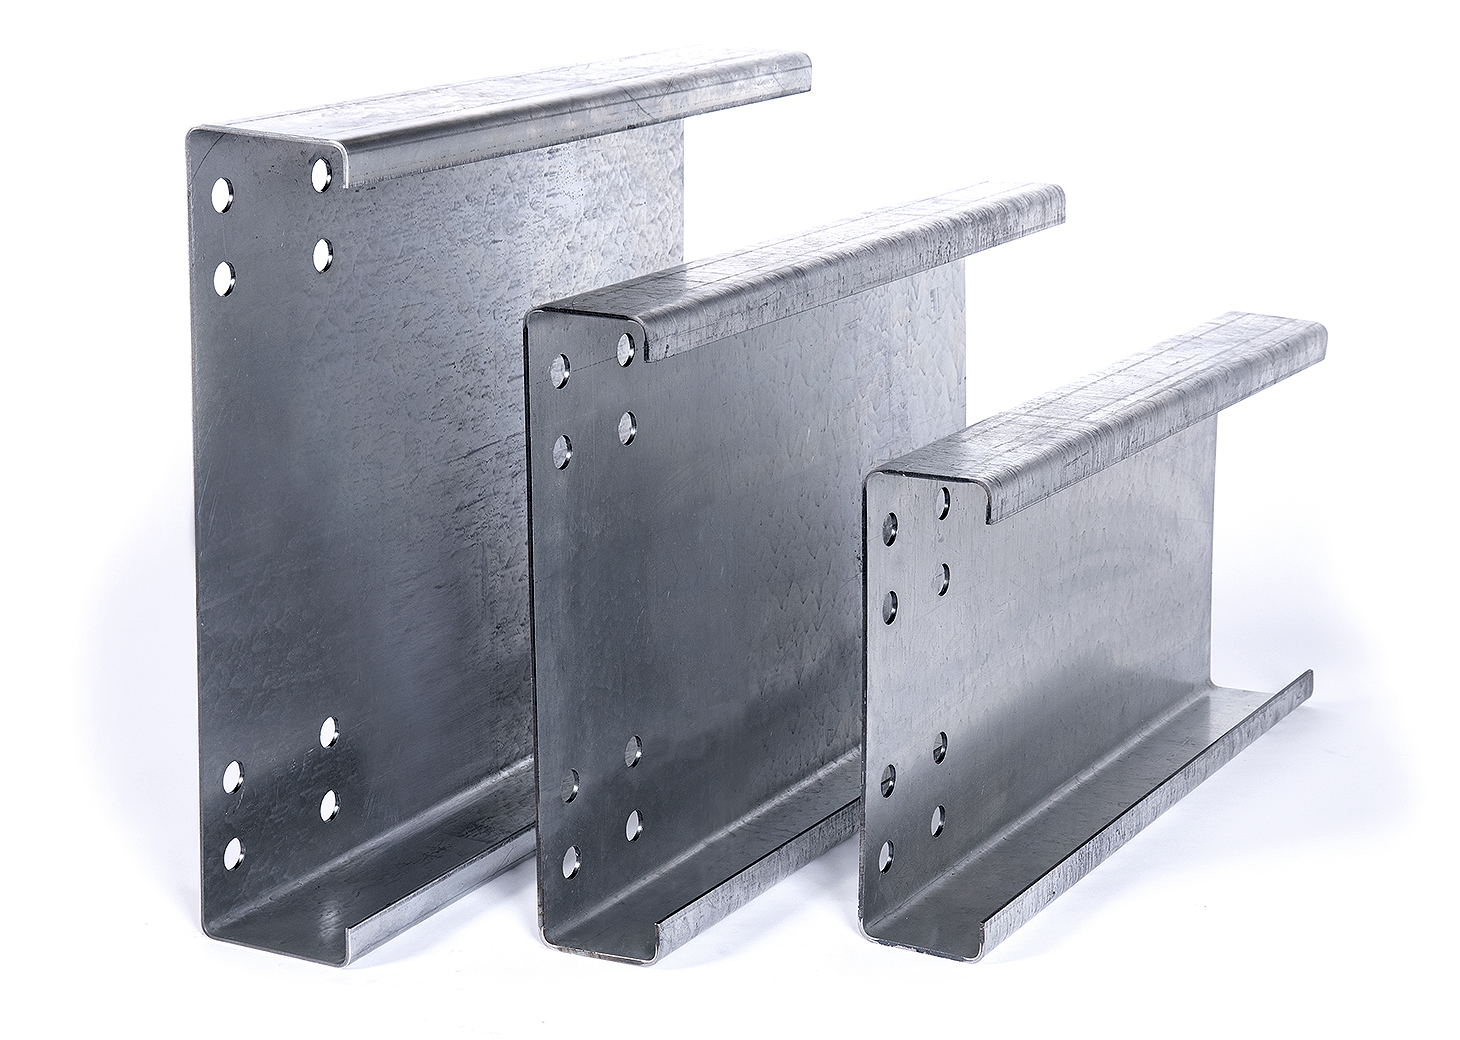 High strength steel channel beam